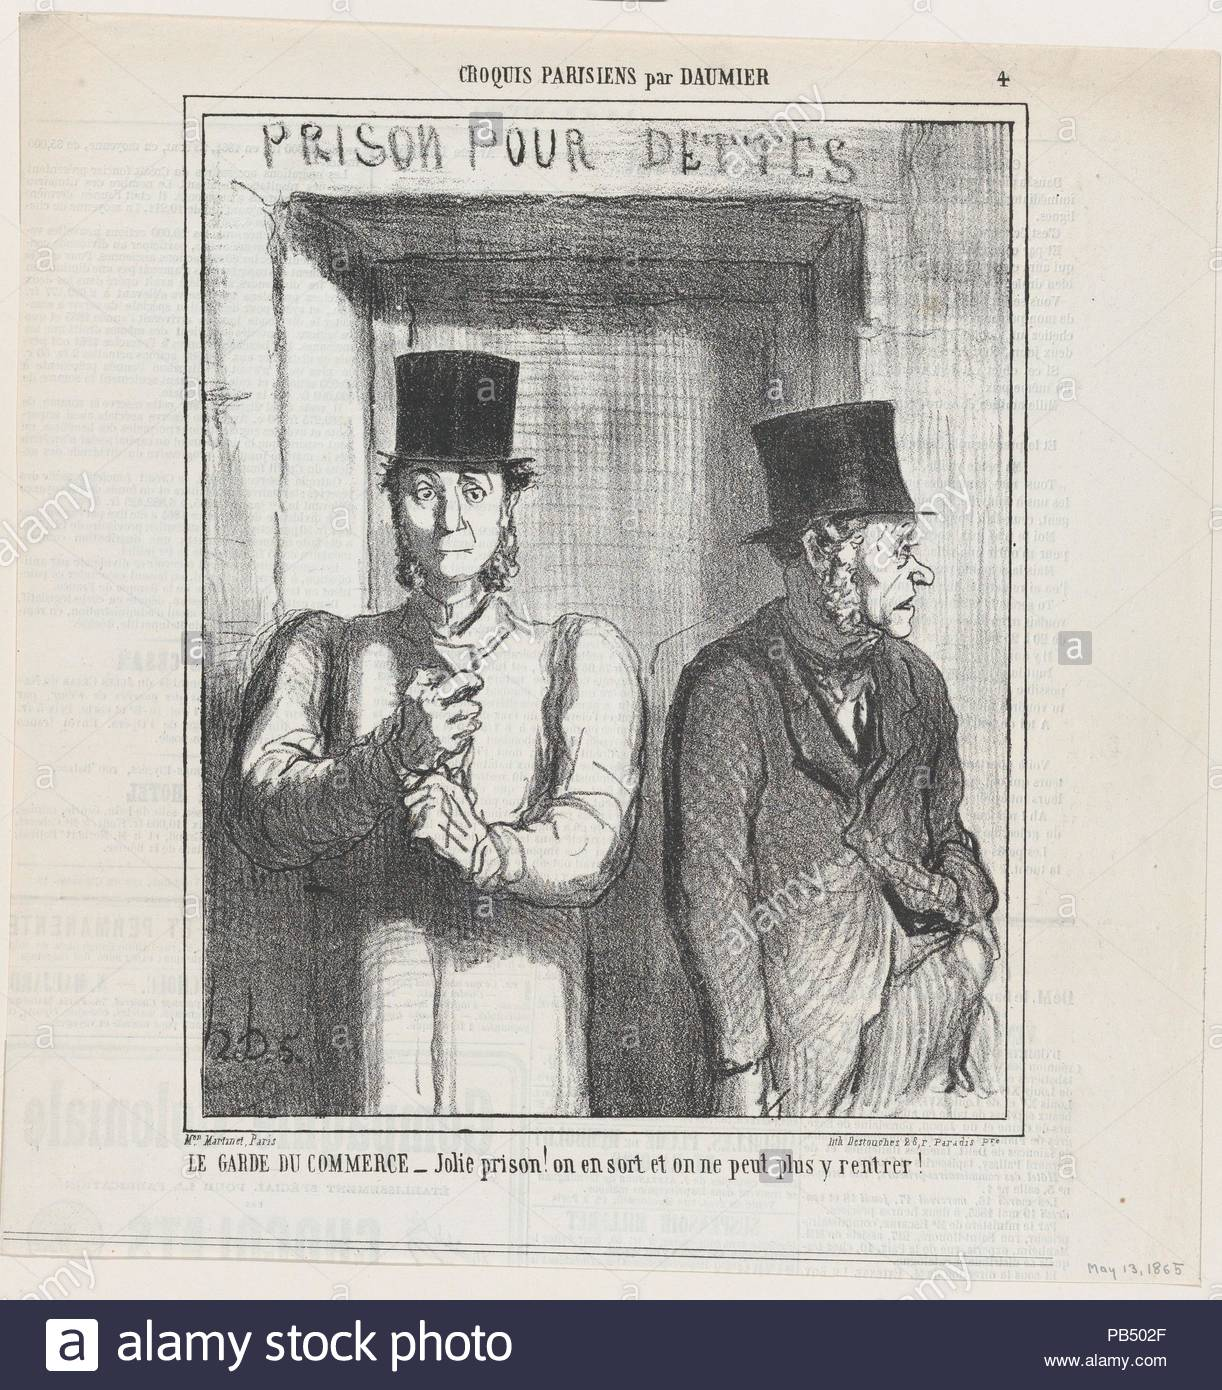 Bailiff at the commercial court, from 'Parisian Sketches,' published in Le Charivari, May 13, 1865. Artist: Honoré Daumier (French, Marseilles 1808-1879 Valmondois). Dimensions: Image: 9 9/16 × 7 3/4 in. (24.3 × 19.7 cm)  Sheet: 11 7/8 × 11 9/16 in. (30.1 × 29.4 cm). Printer: Destouches (Paris). Publisher: Aaron Martinet (French, 1762-1841). Series/Portfolio: 'Parisian sketches' (Croquis Parisiens). Date: May 13, 1865.  - Nice prison! Once you are out, there is no way to get back in again!. Museum: Metropolitan Museum of Art, New York, USA. - Stock Image